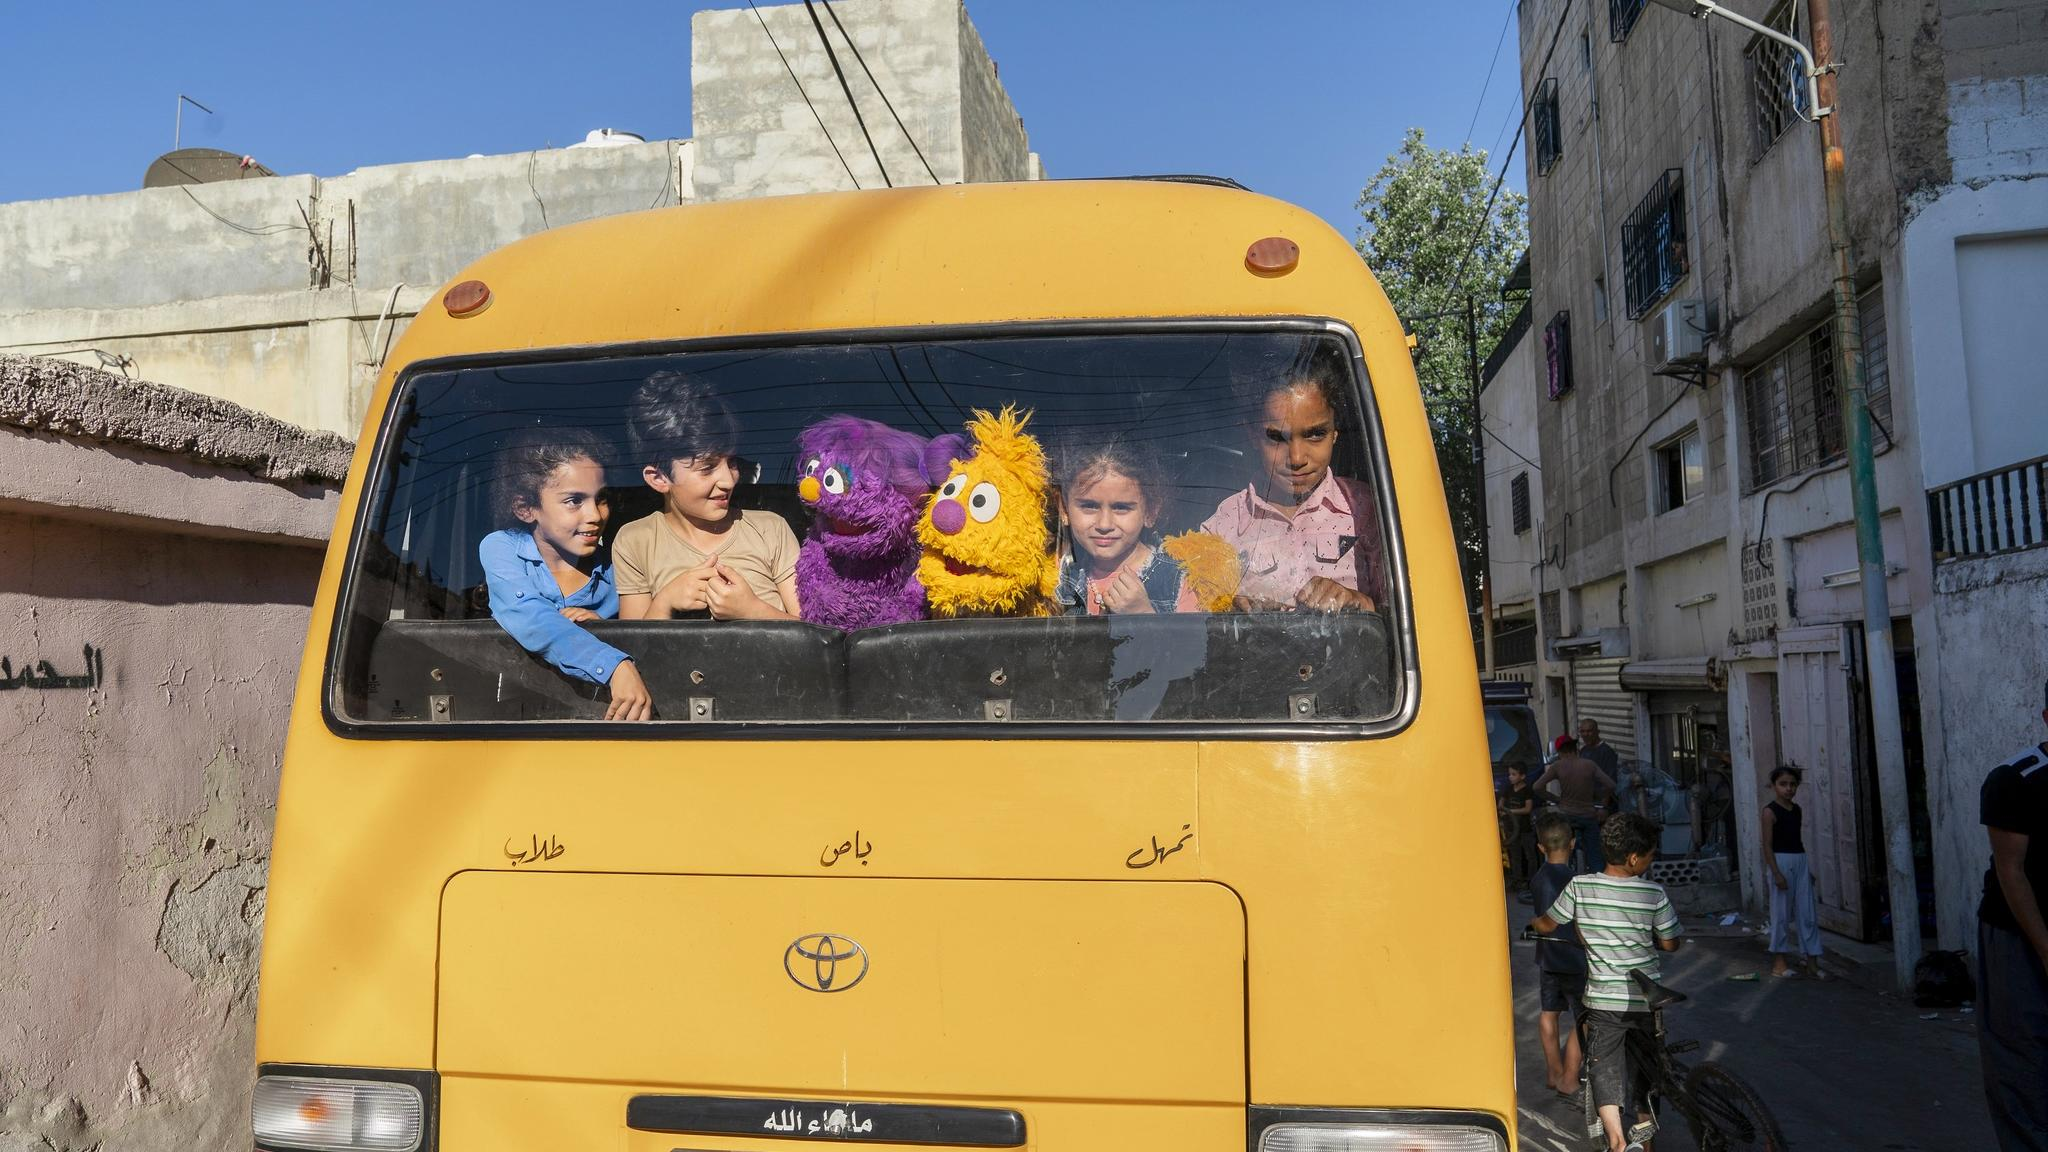 Kids and sesame street puppets looking out of the back window of a bus